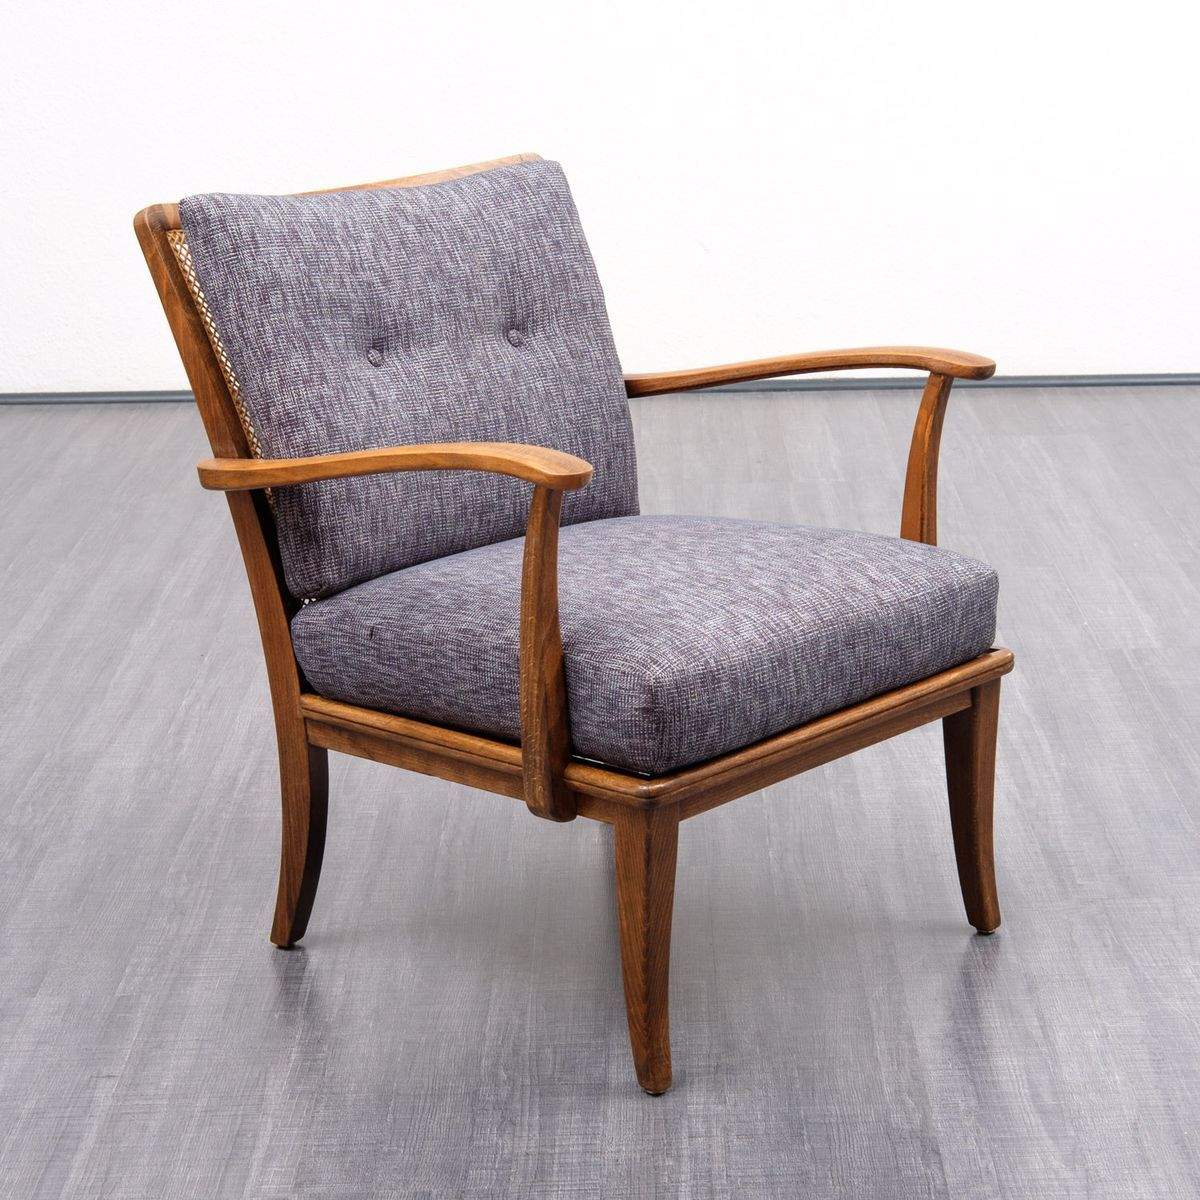 Design Ohrensessel Sessel Mit Bast 1950er In 2019 Sessel Armchair Accent